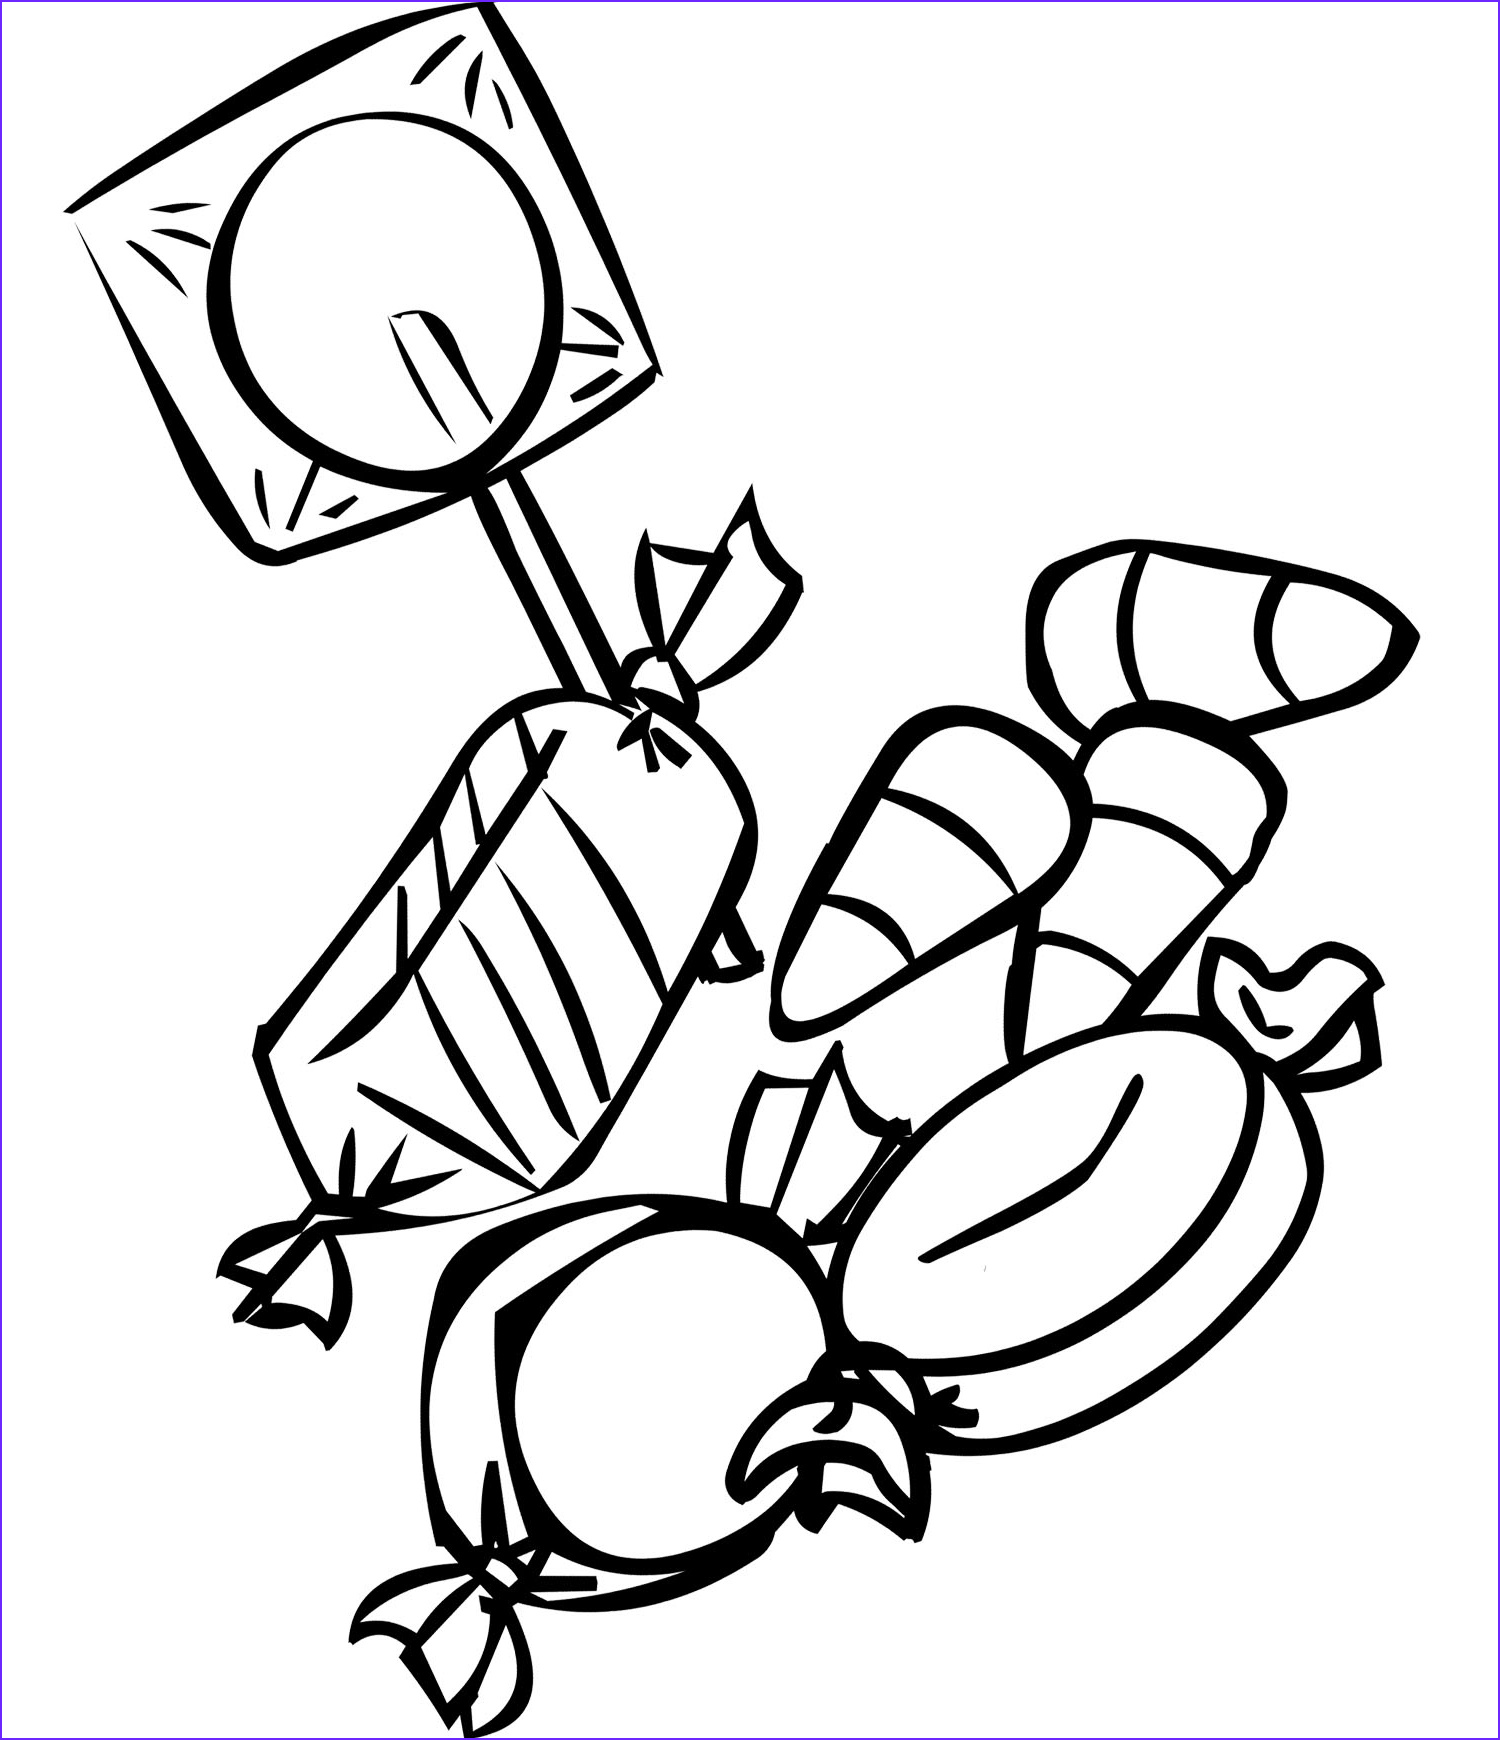 Candy Coloring Inspirational Images Free Printable Candy Coloring Pages for Kids